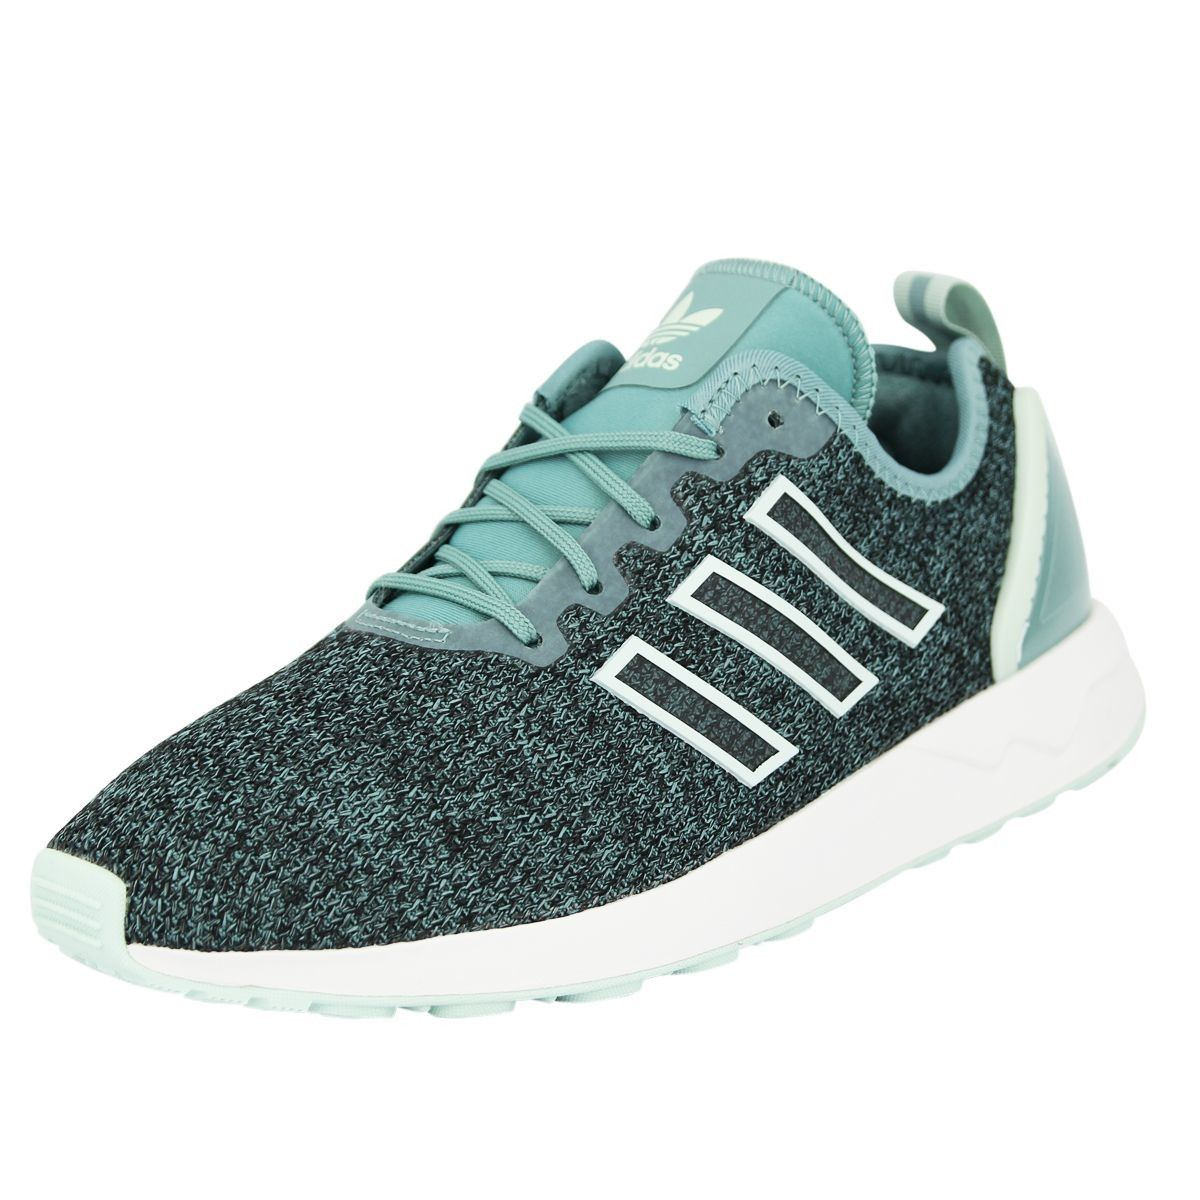 Adidas Originals Zx Flux Adv Chaussures Mode Sneakers Homme